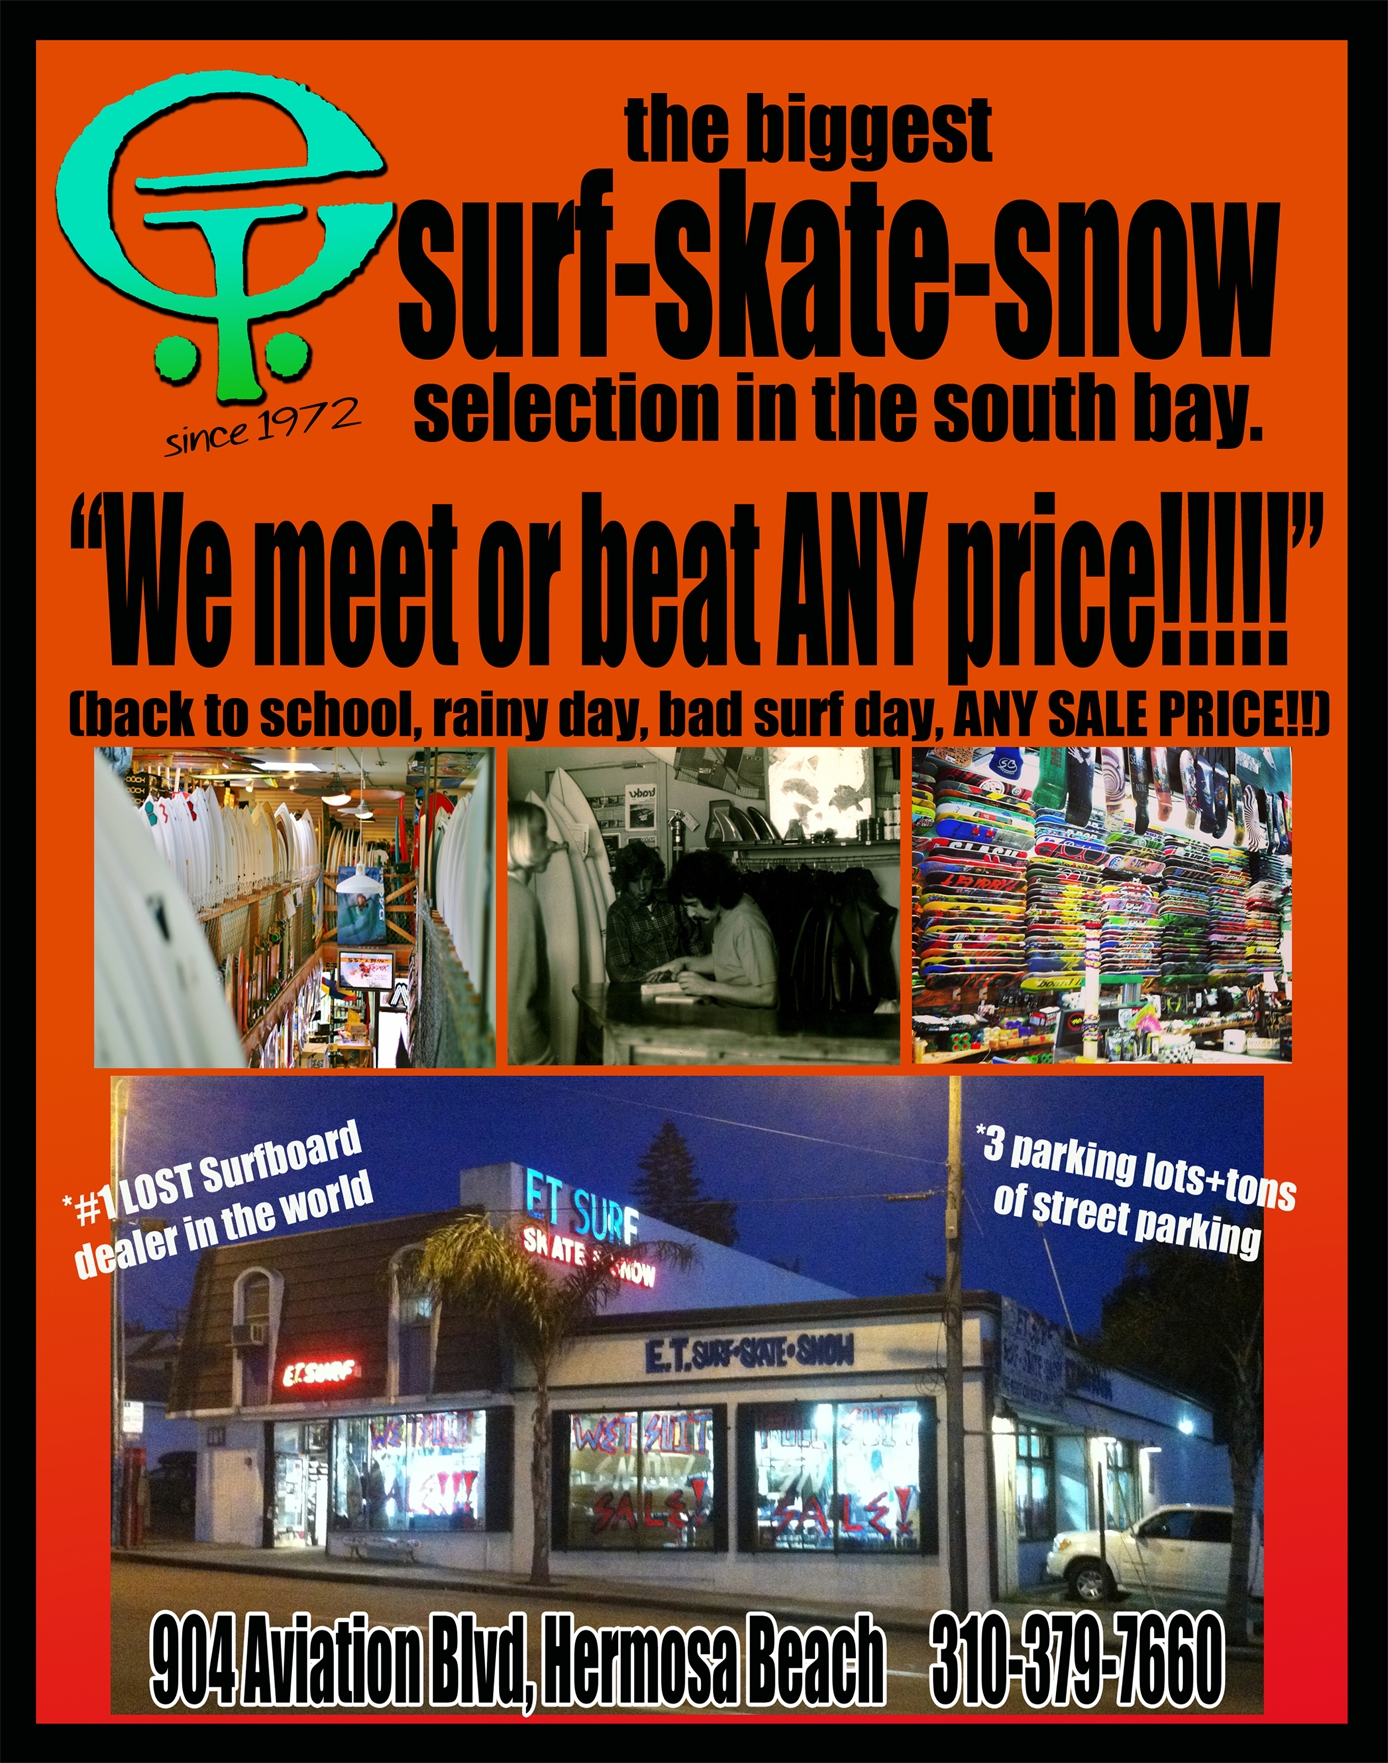 Best of the Beach 2014, Surf Shop: ET Surf